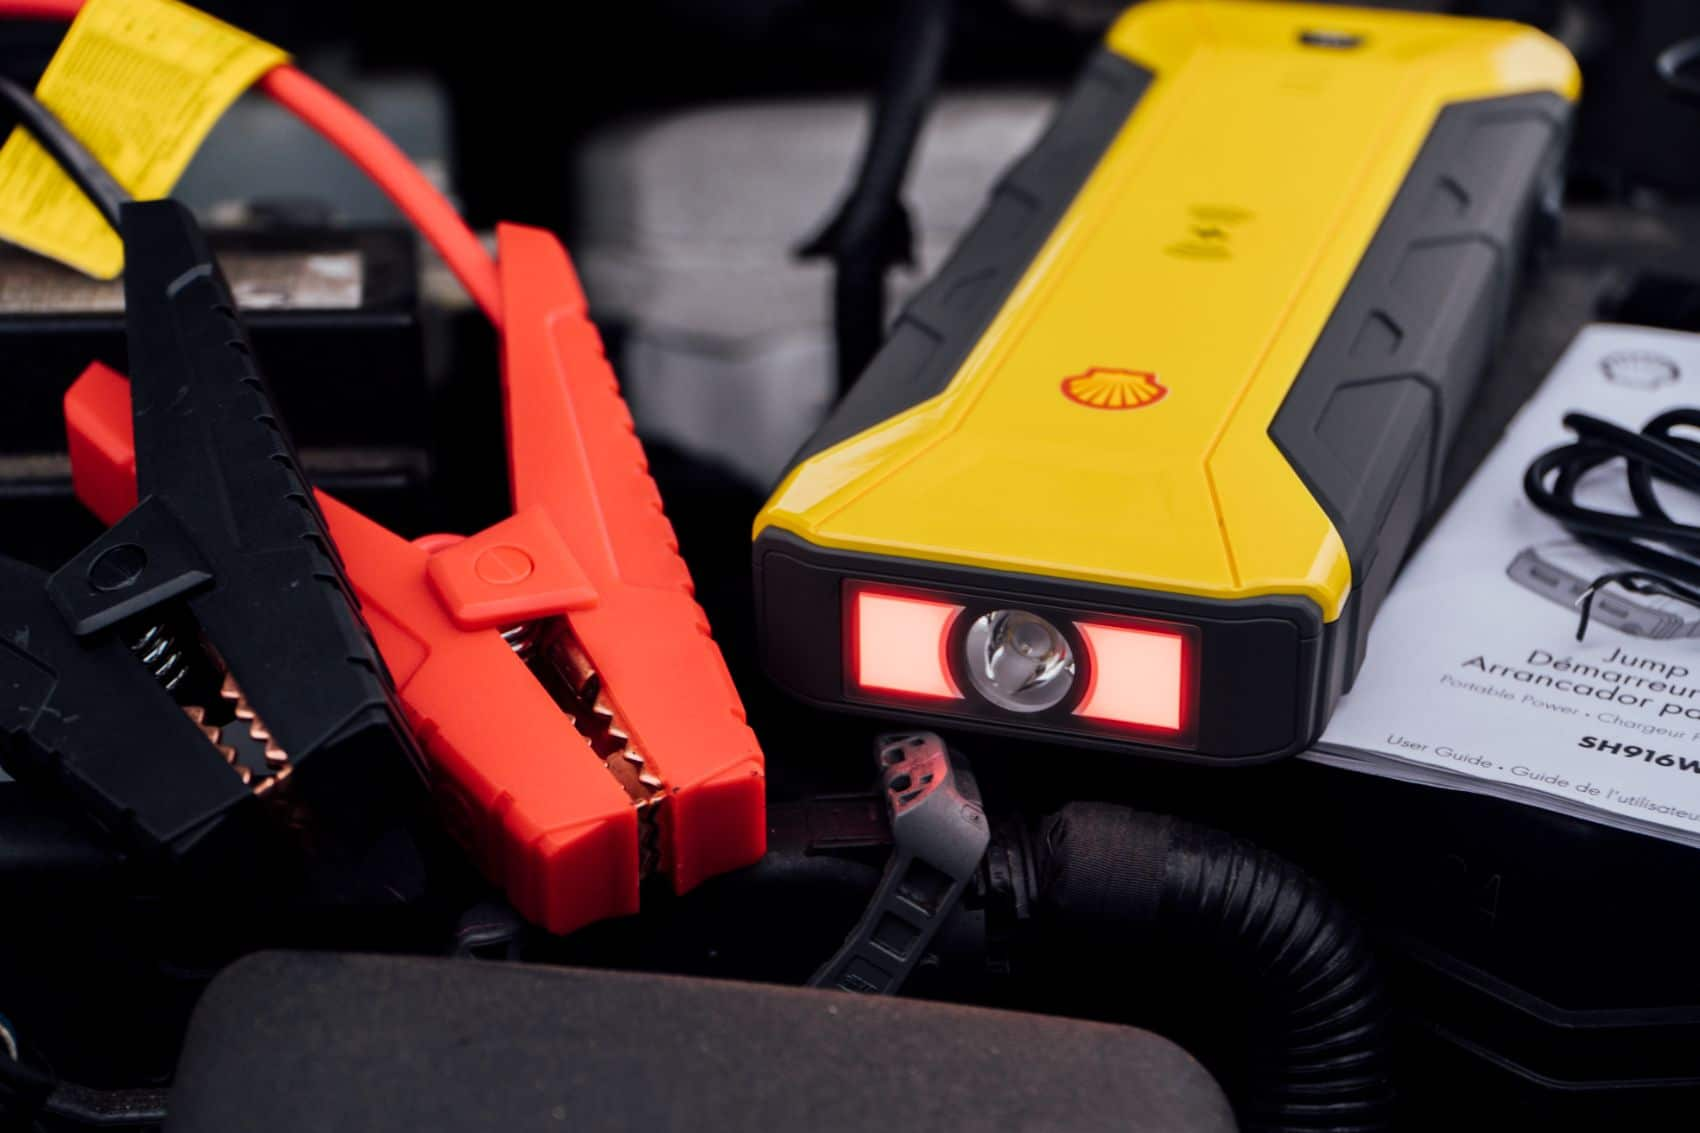 Shell 1200A Portable Jump Starter 22 - 1200A Shell Portable Jump Starter Review: How It Works & Should You Buy It?